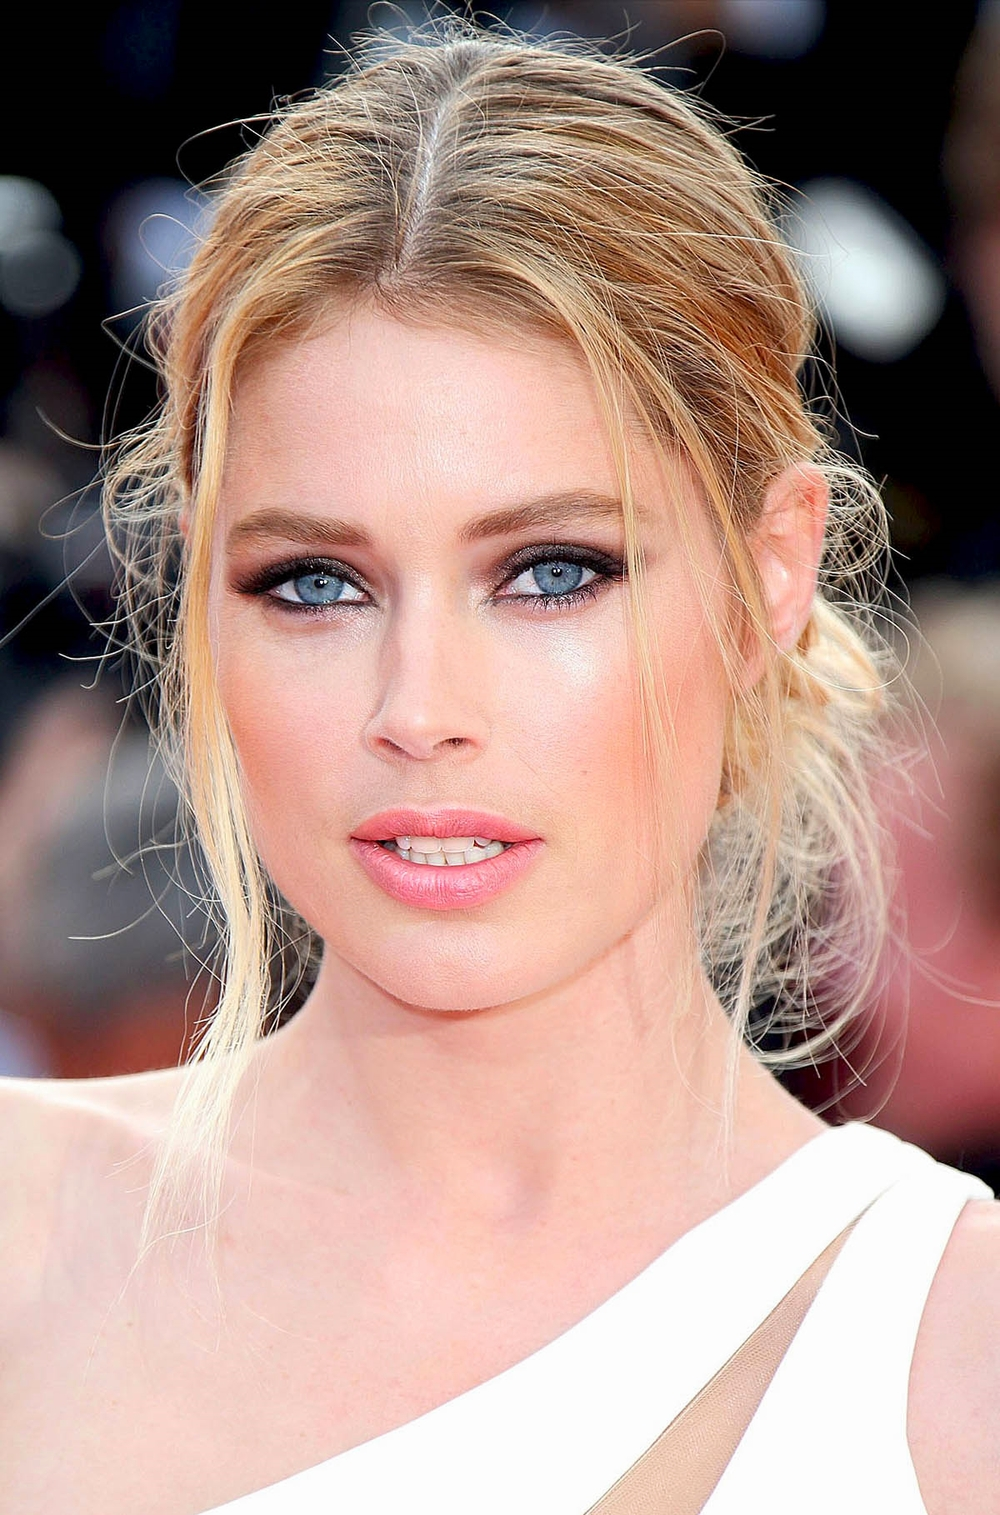 Doutzen Kroes's at the Cannes Opening Ceremony in Atelier Versace             Photo by Getty